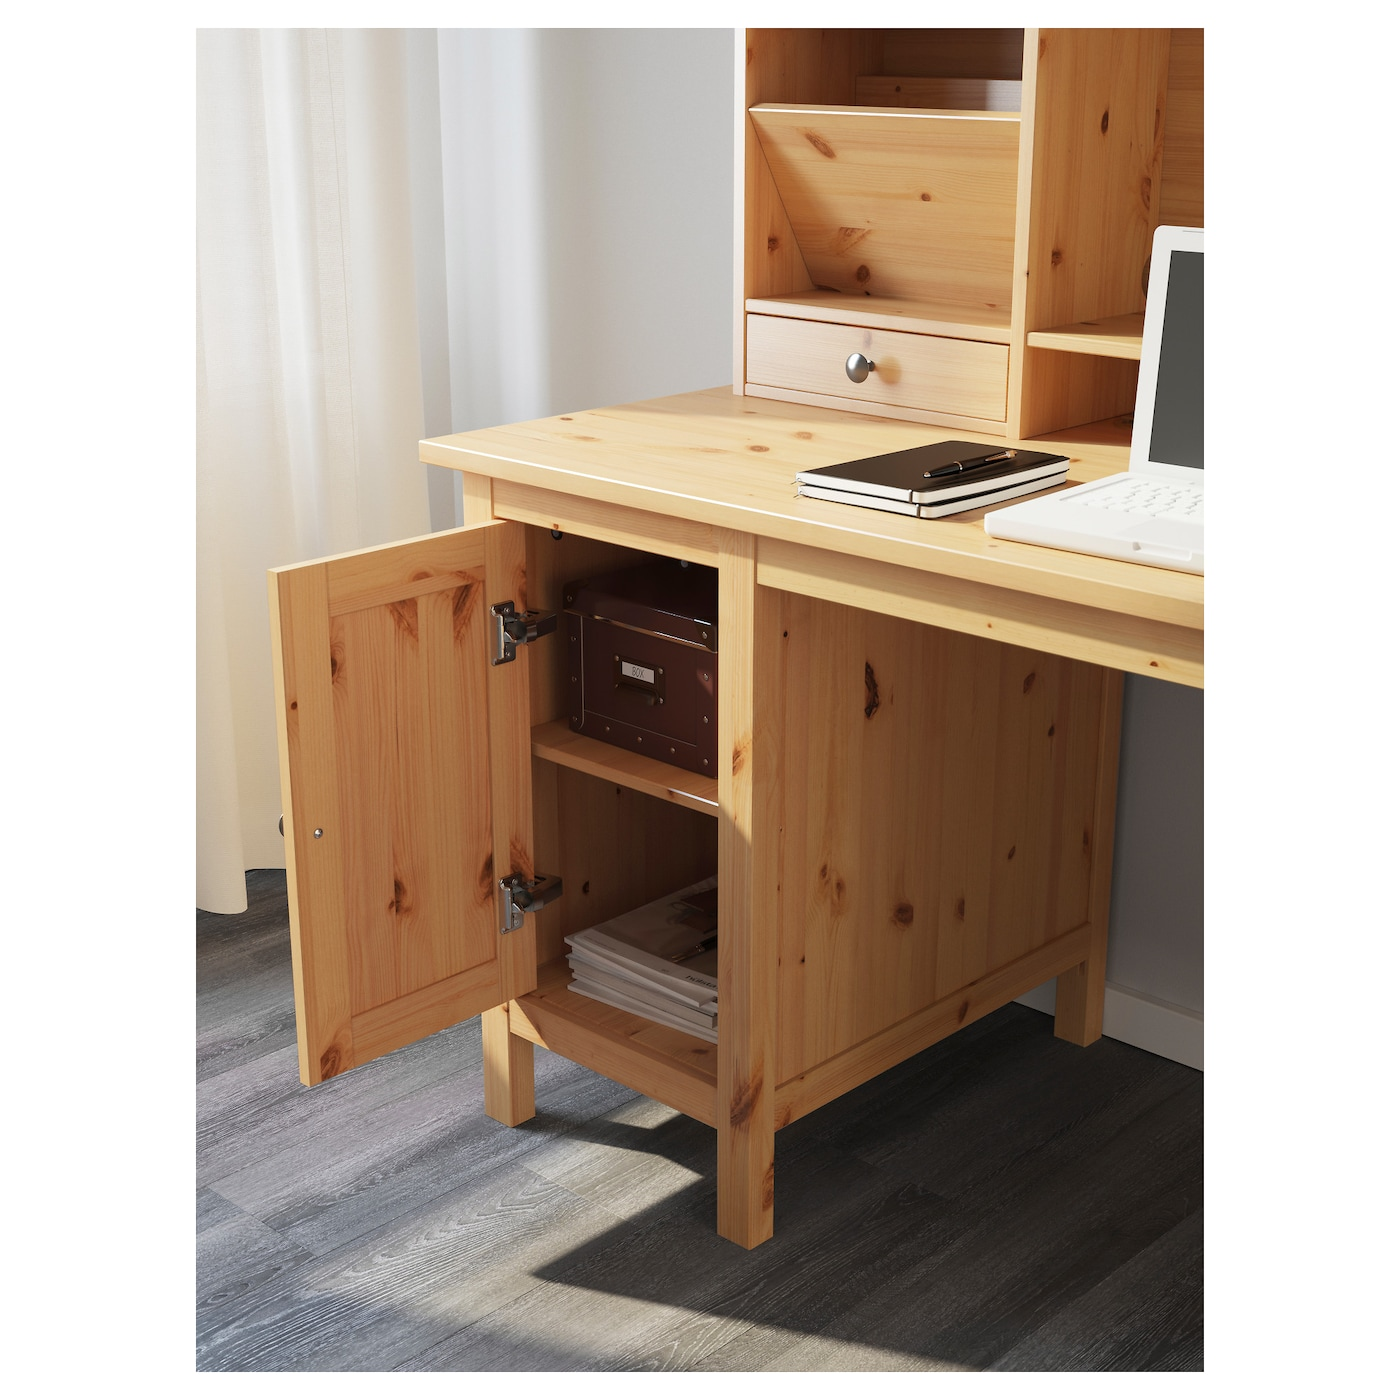 IKEA HEMNES desk with add-on unit Solid wood is a durable natural material.